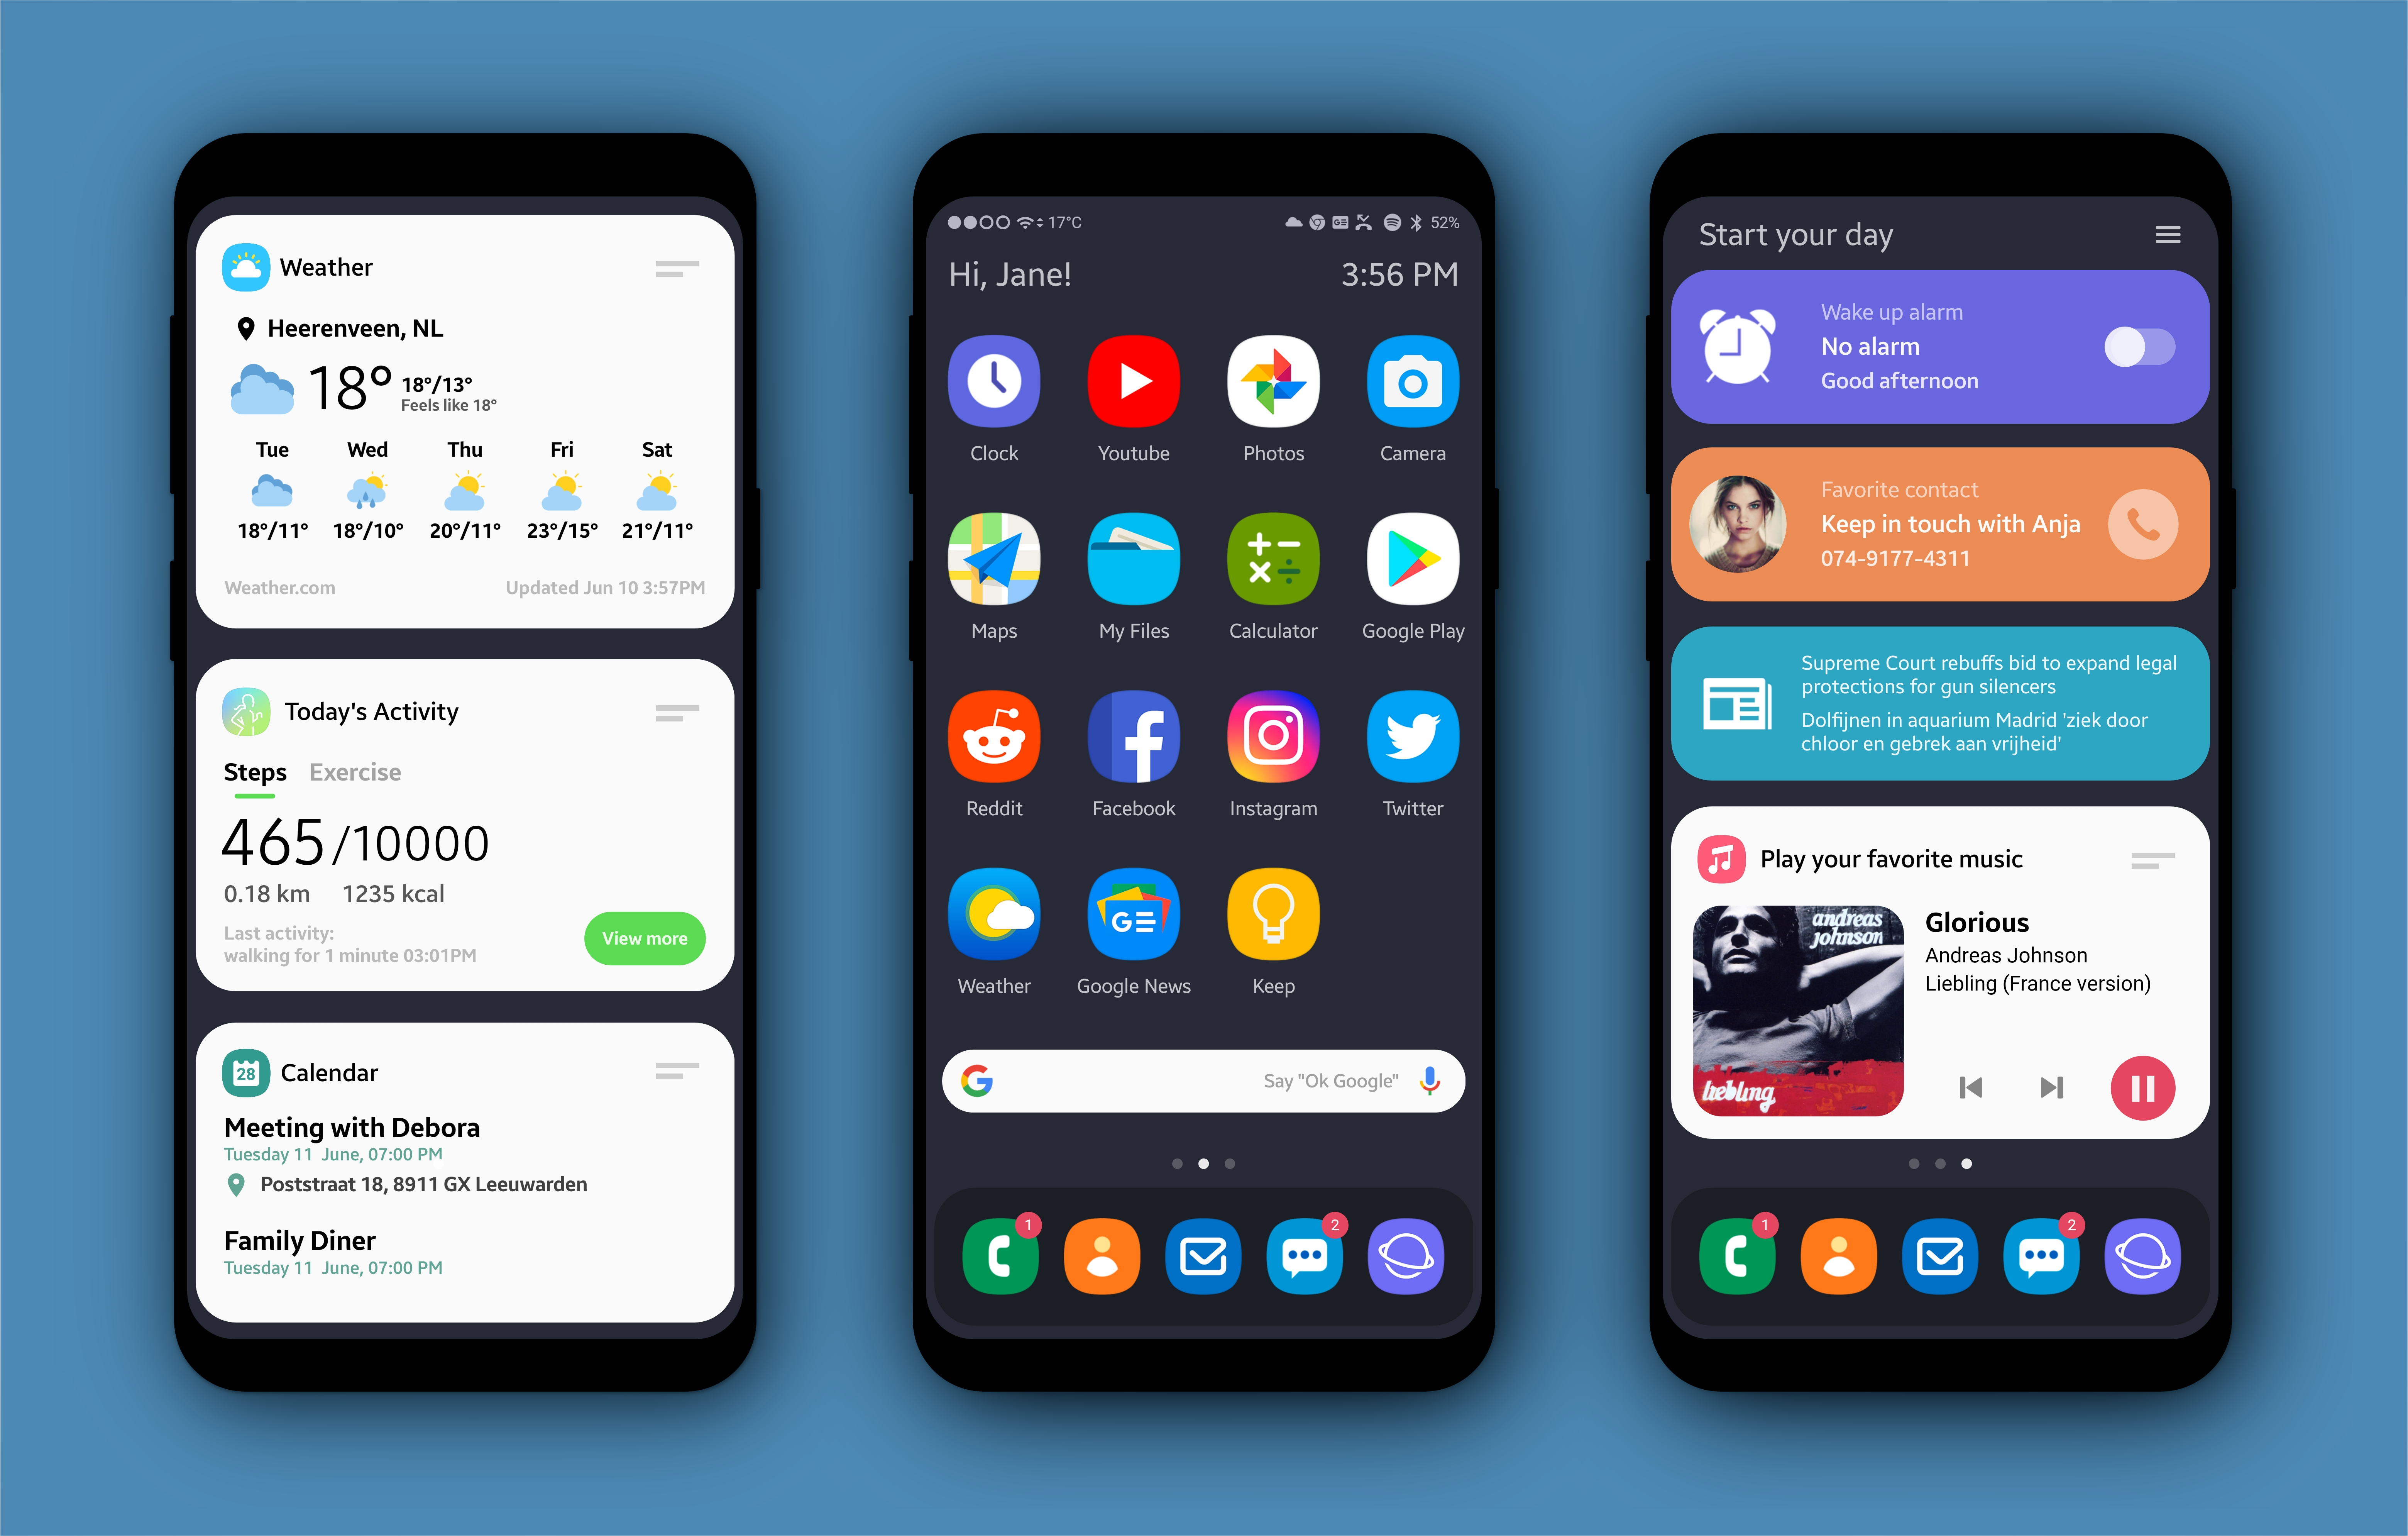 KLWP Theme Phone themes, Hd phone wallpapers, App design